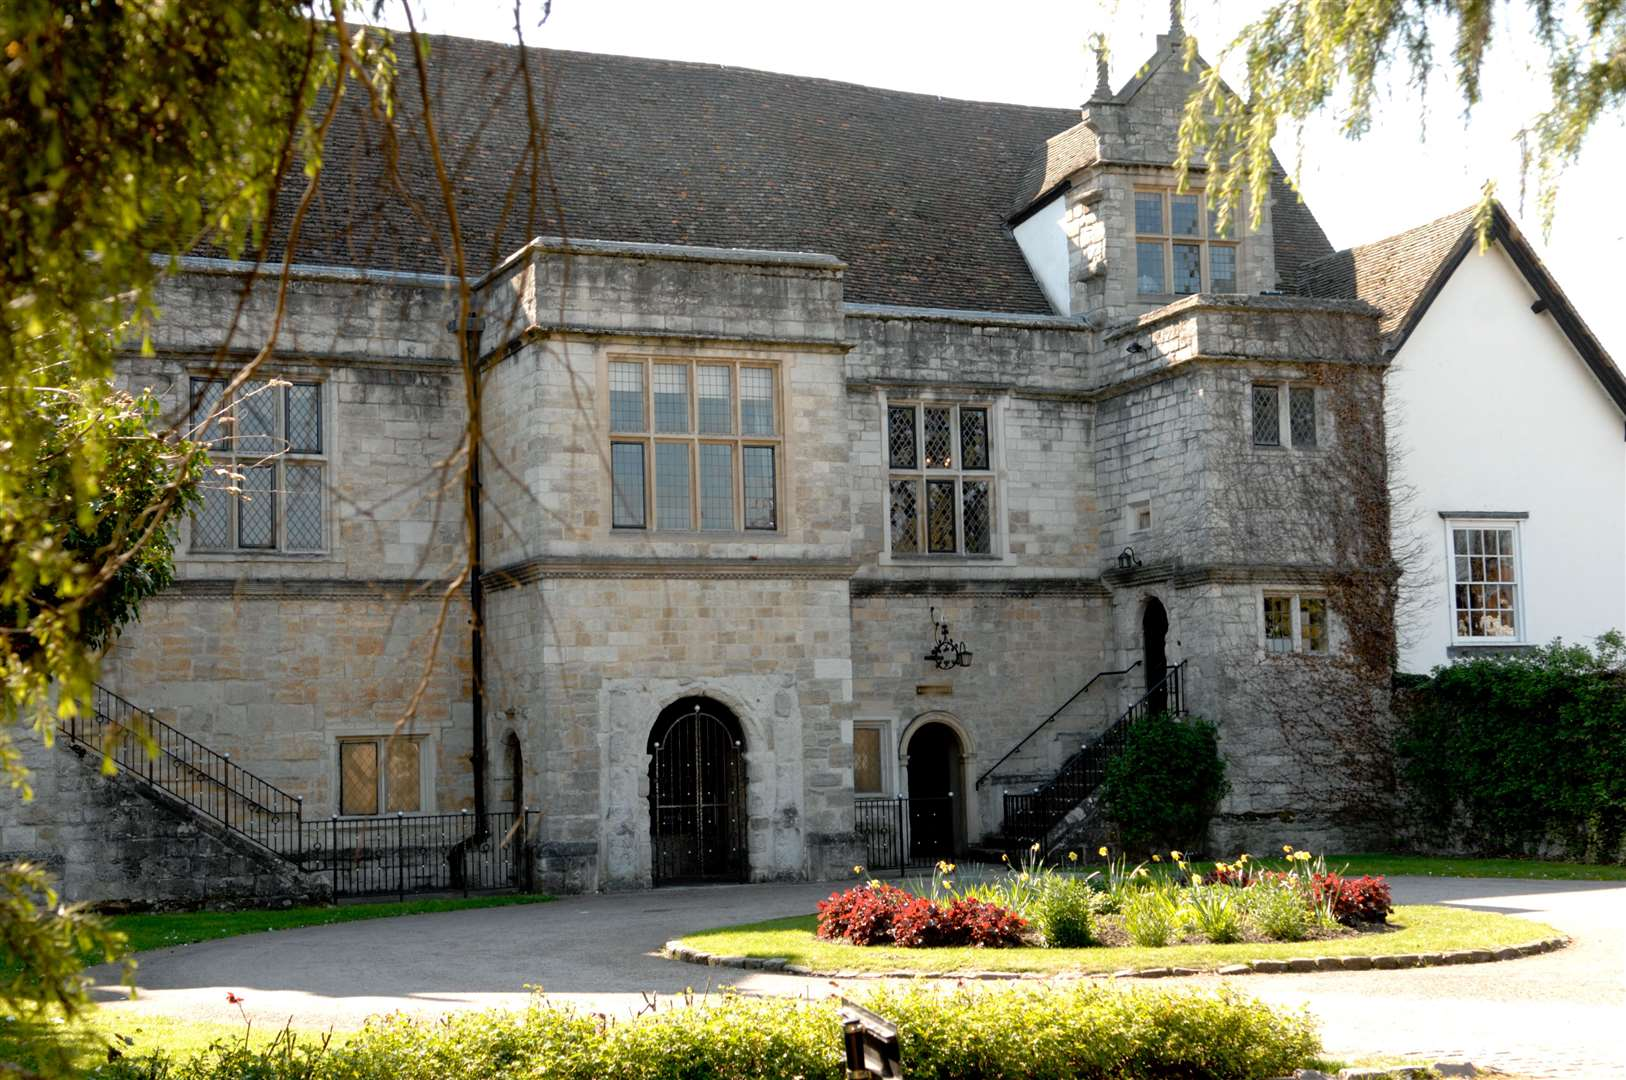 The Archbishop's Palace, Maidstone. Picture: Matthew Walker